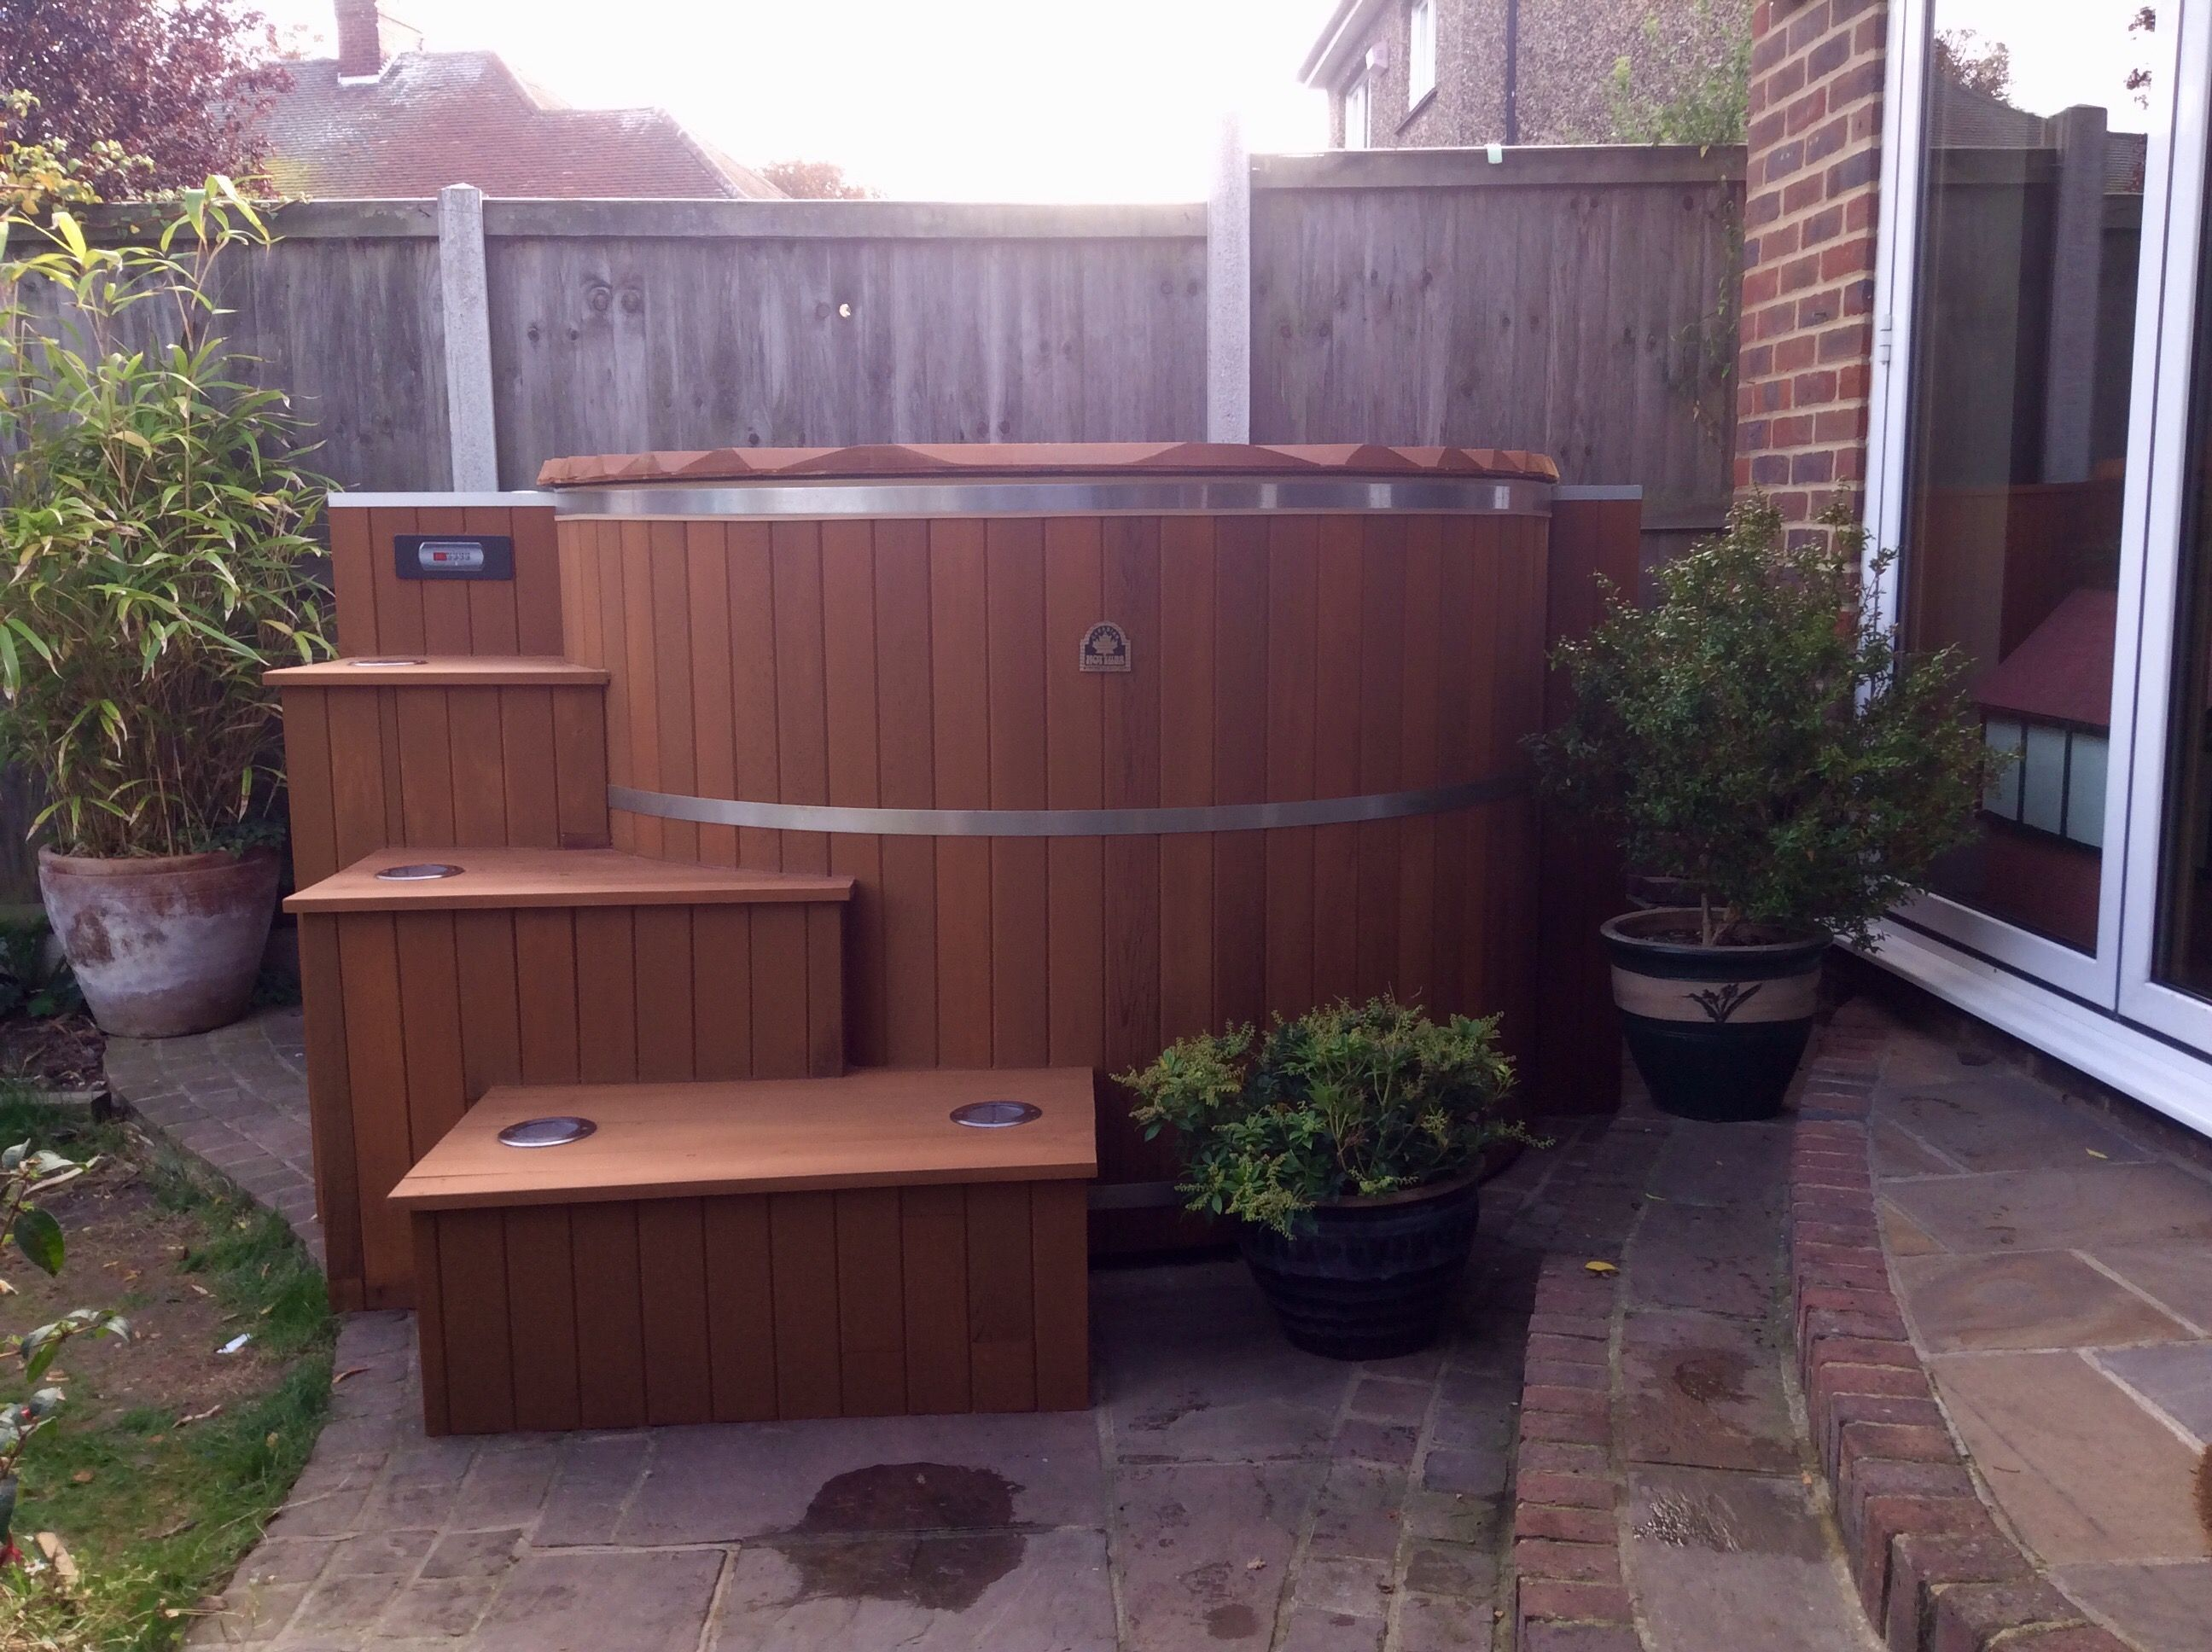 Our Cedar Hot Tub Kits Are Assembled Onsite, Allowing Them